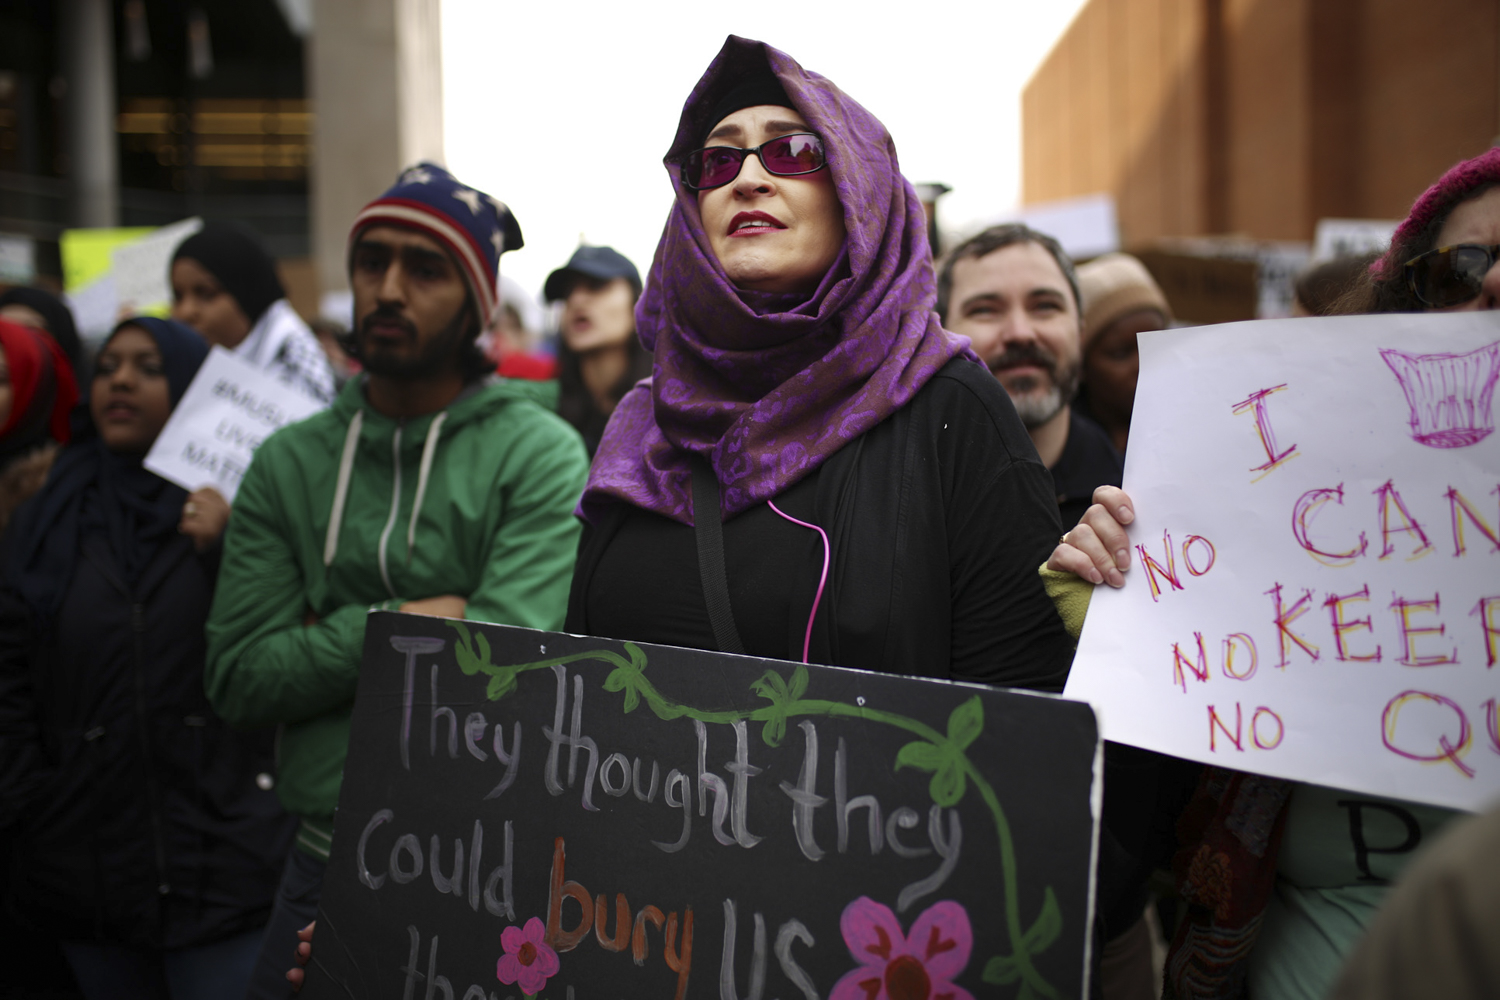 """Residents and students gathered for the """"Muslim Ban and Border Wall Protest"""" on the campus of Virginia Commonwealth University in Richmond, Va., on Sunday, Jan. 29, 2017. [Scott P. Yates/progress-index.com]"""